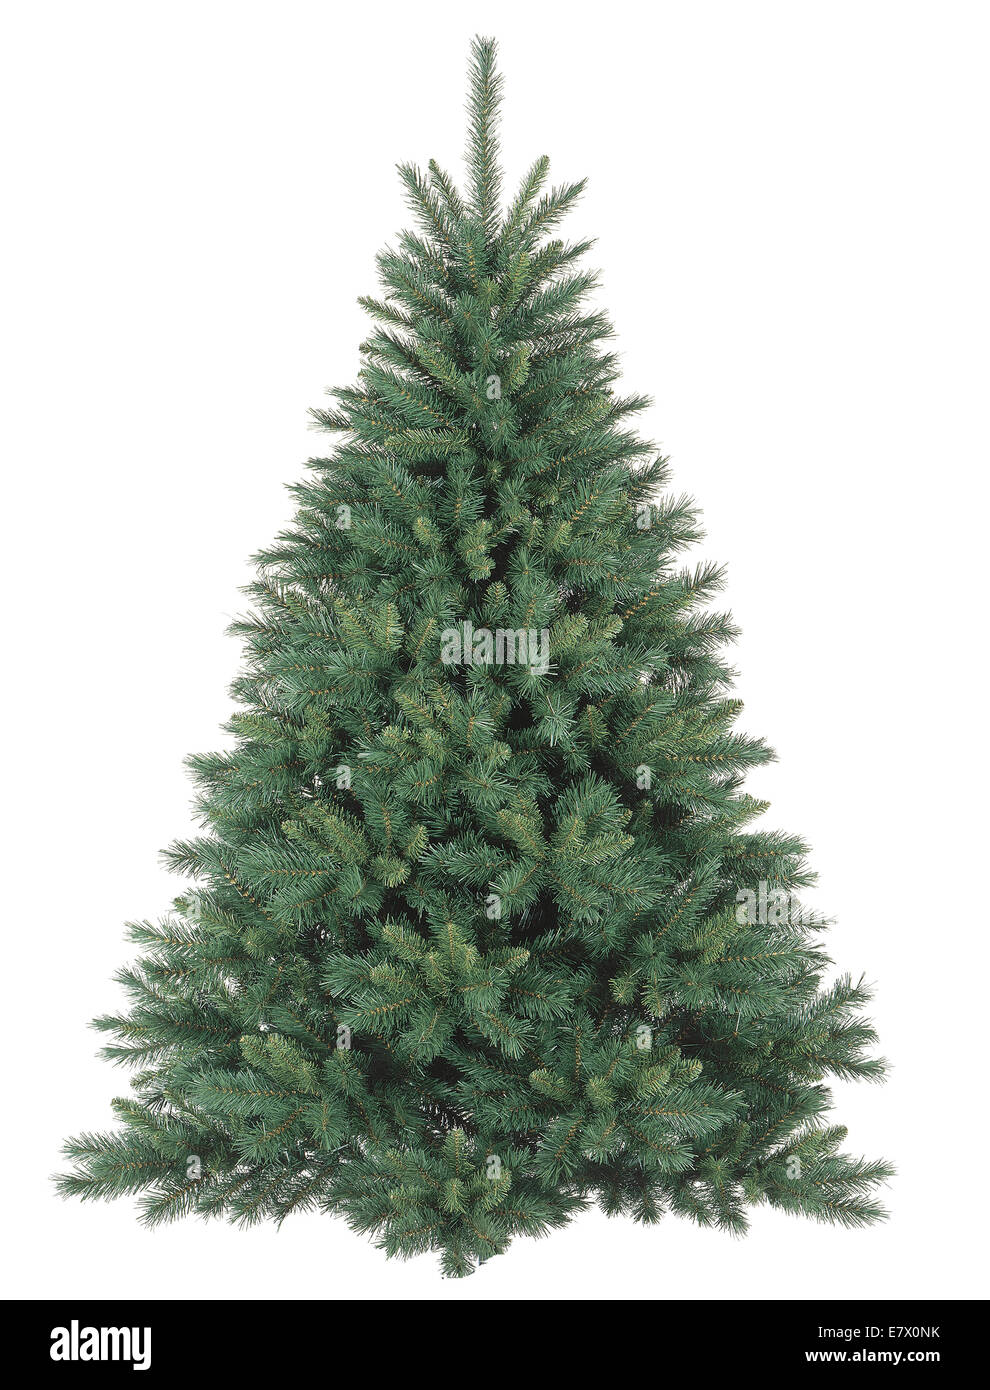 Christmas tree without ornaments - Stock Image